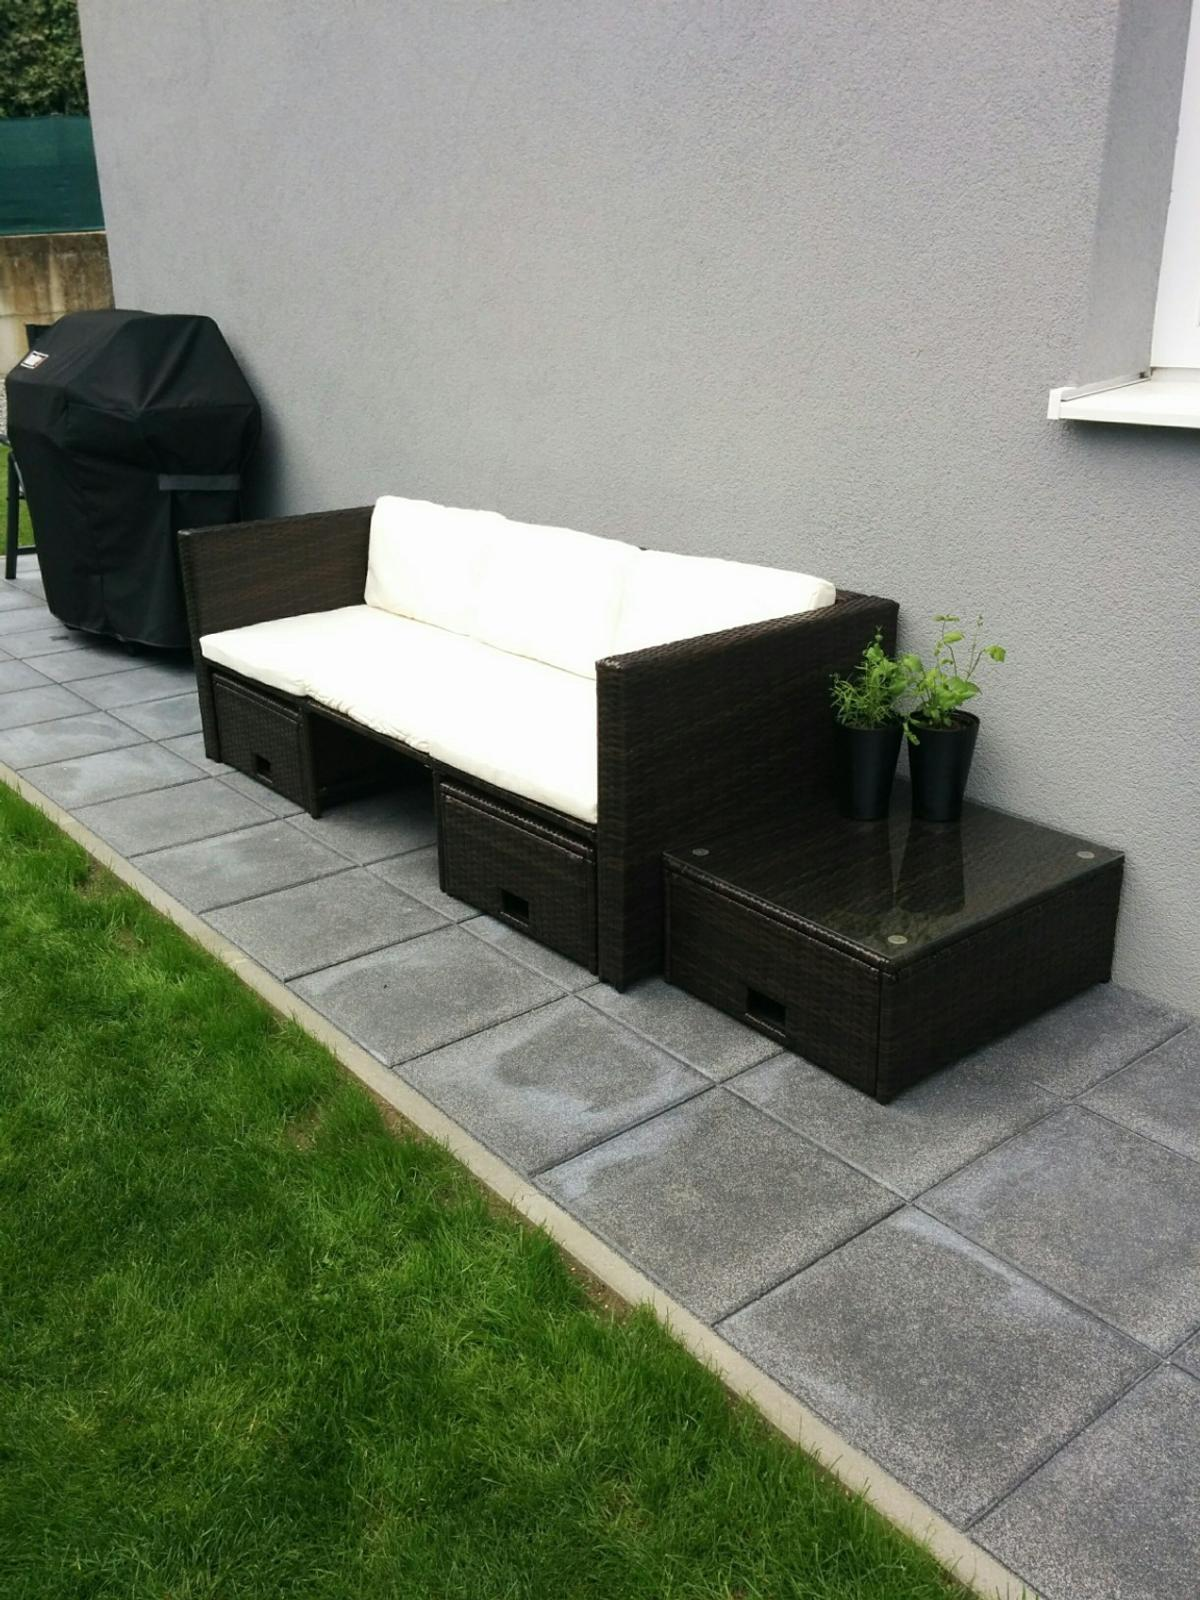 Gartenlounge Set Sofa Sitzgruppe In 6421 Rietz For 140 00 For Sale Shpock